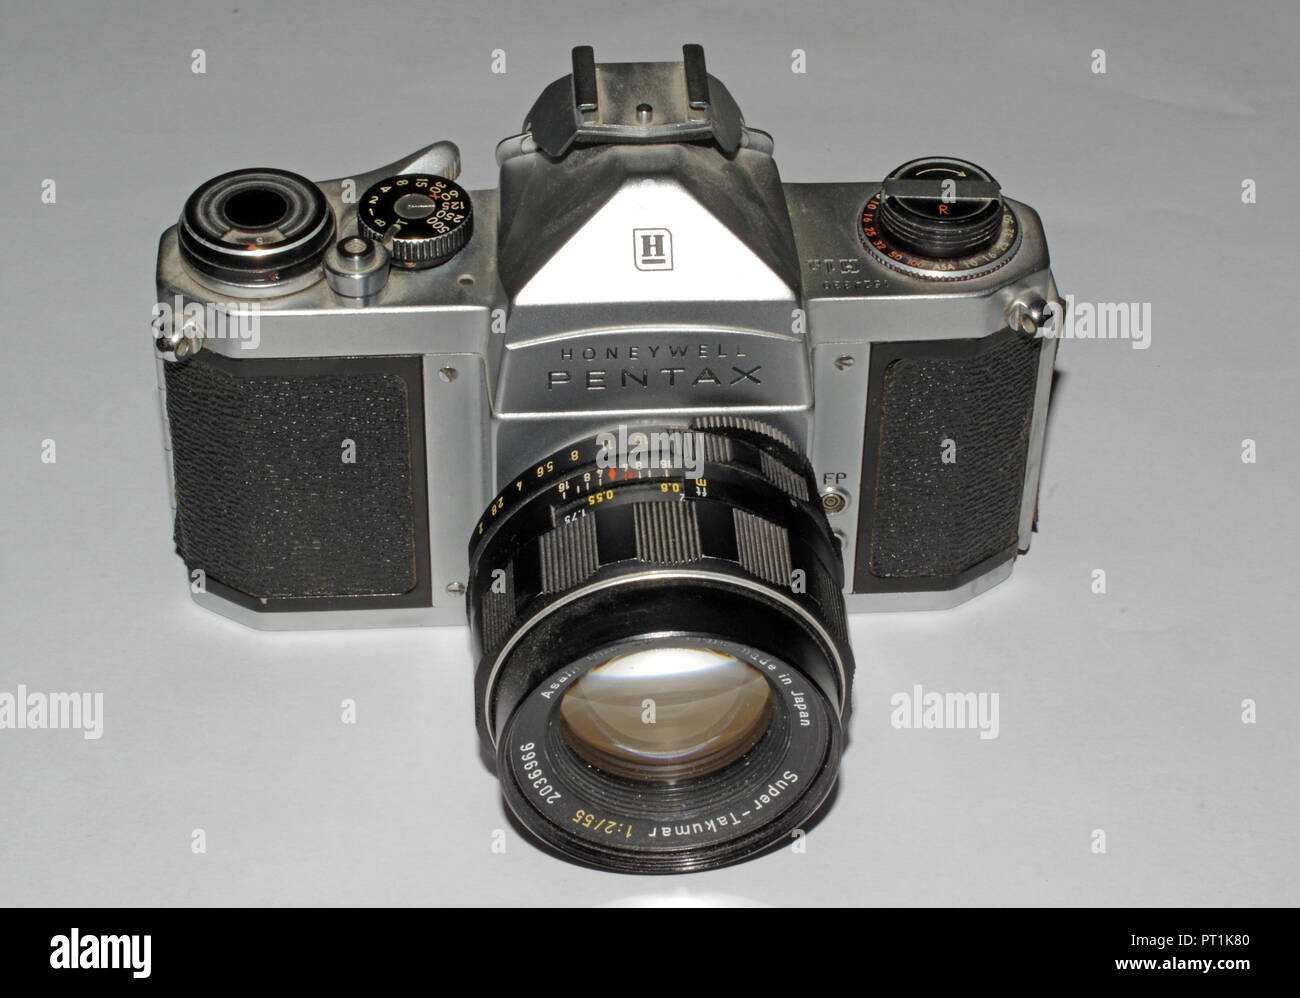 Honeywell Pentax H-1 camera  with lens (1965 about) - Stock Image